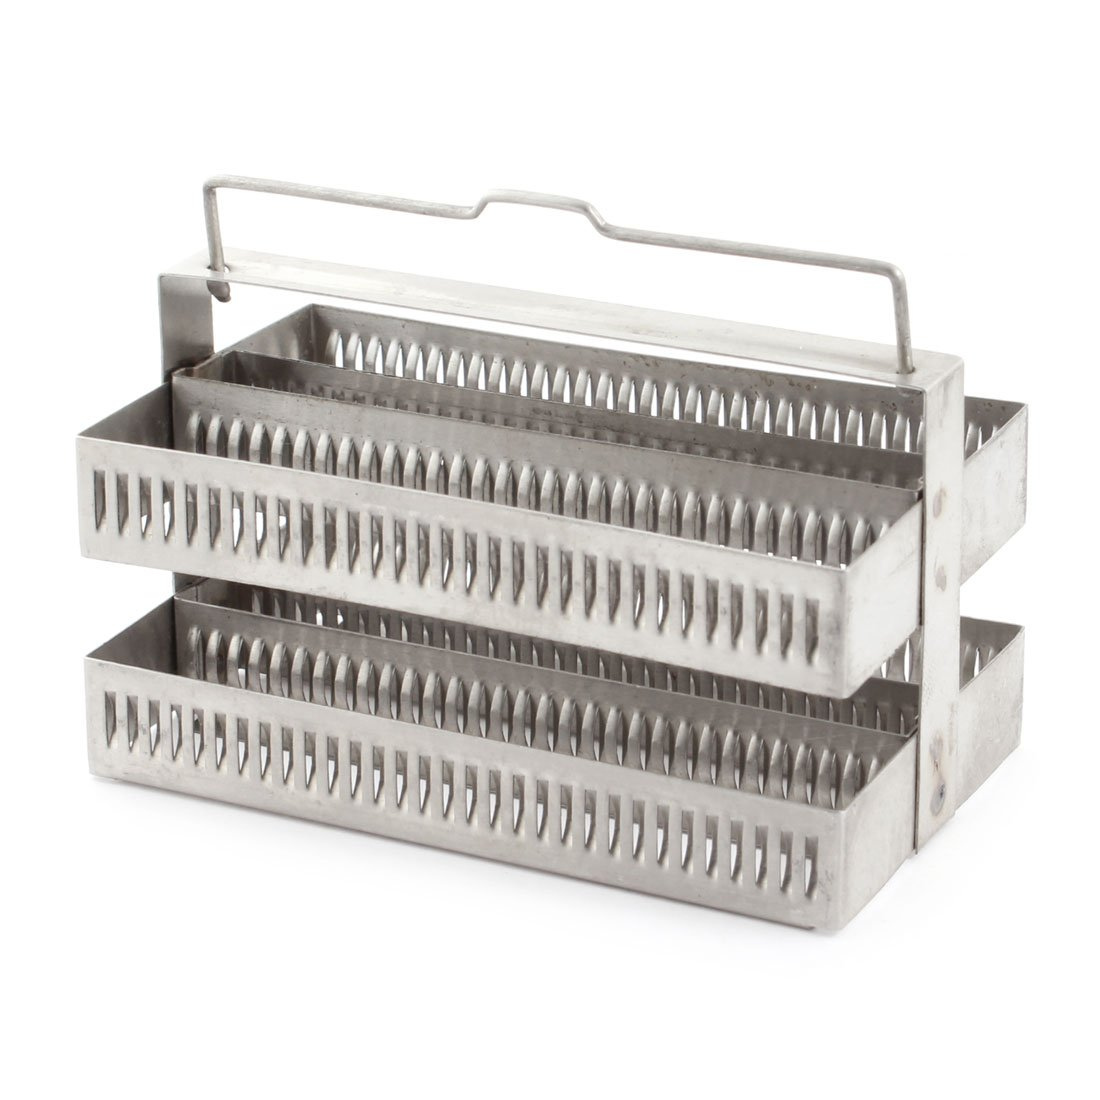 Lab Spare Parts Microbiology Stainless Steel Staining Rack 60 Slots Sourcingmap a14091000ux0463